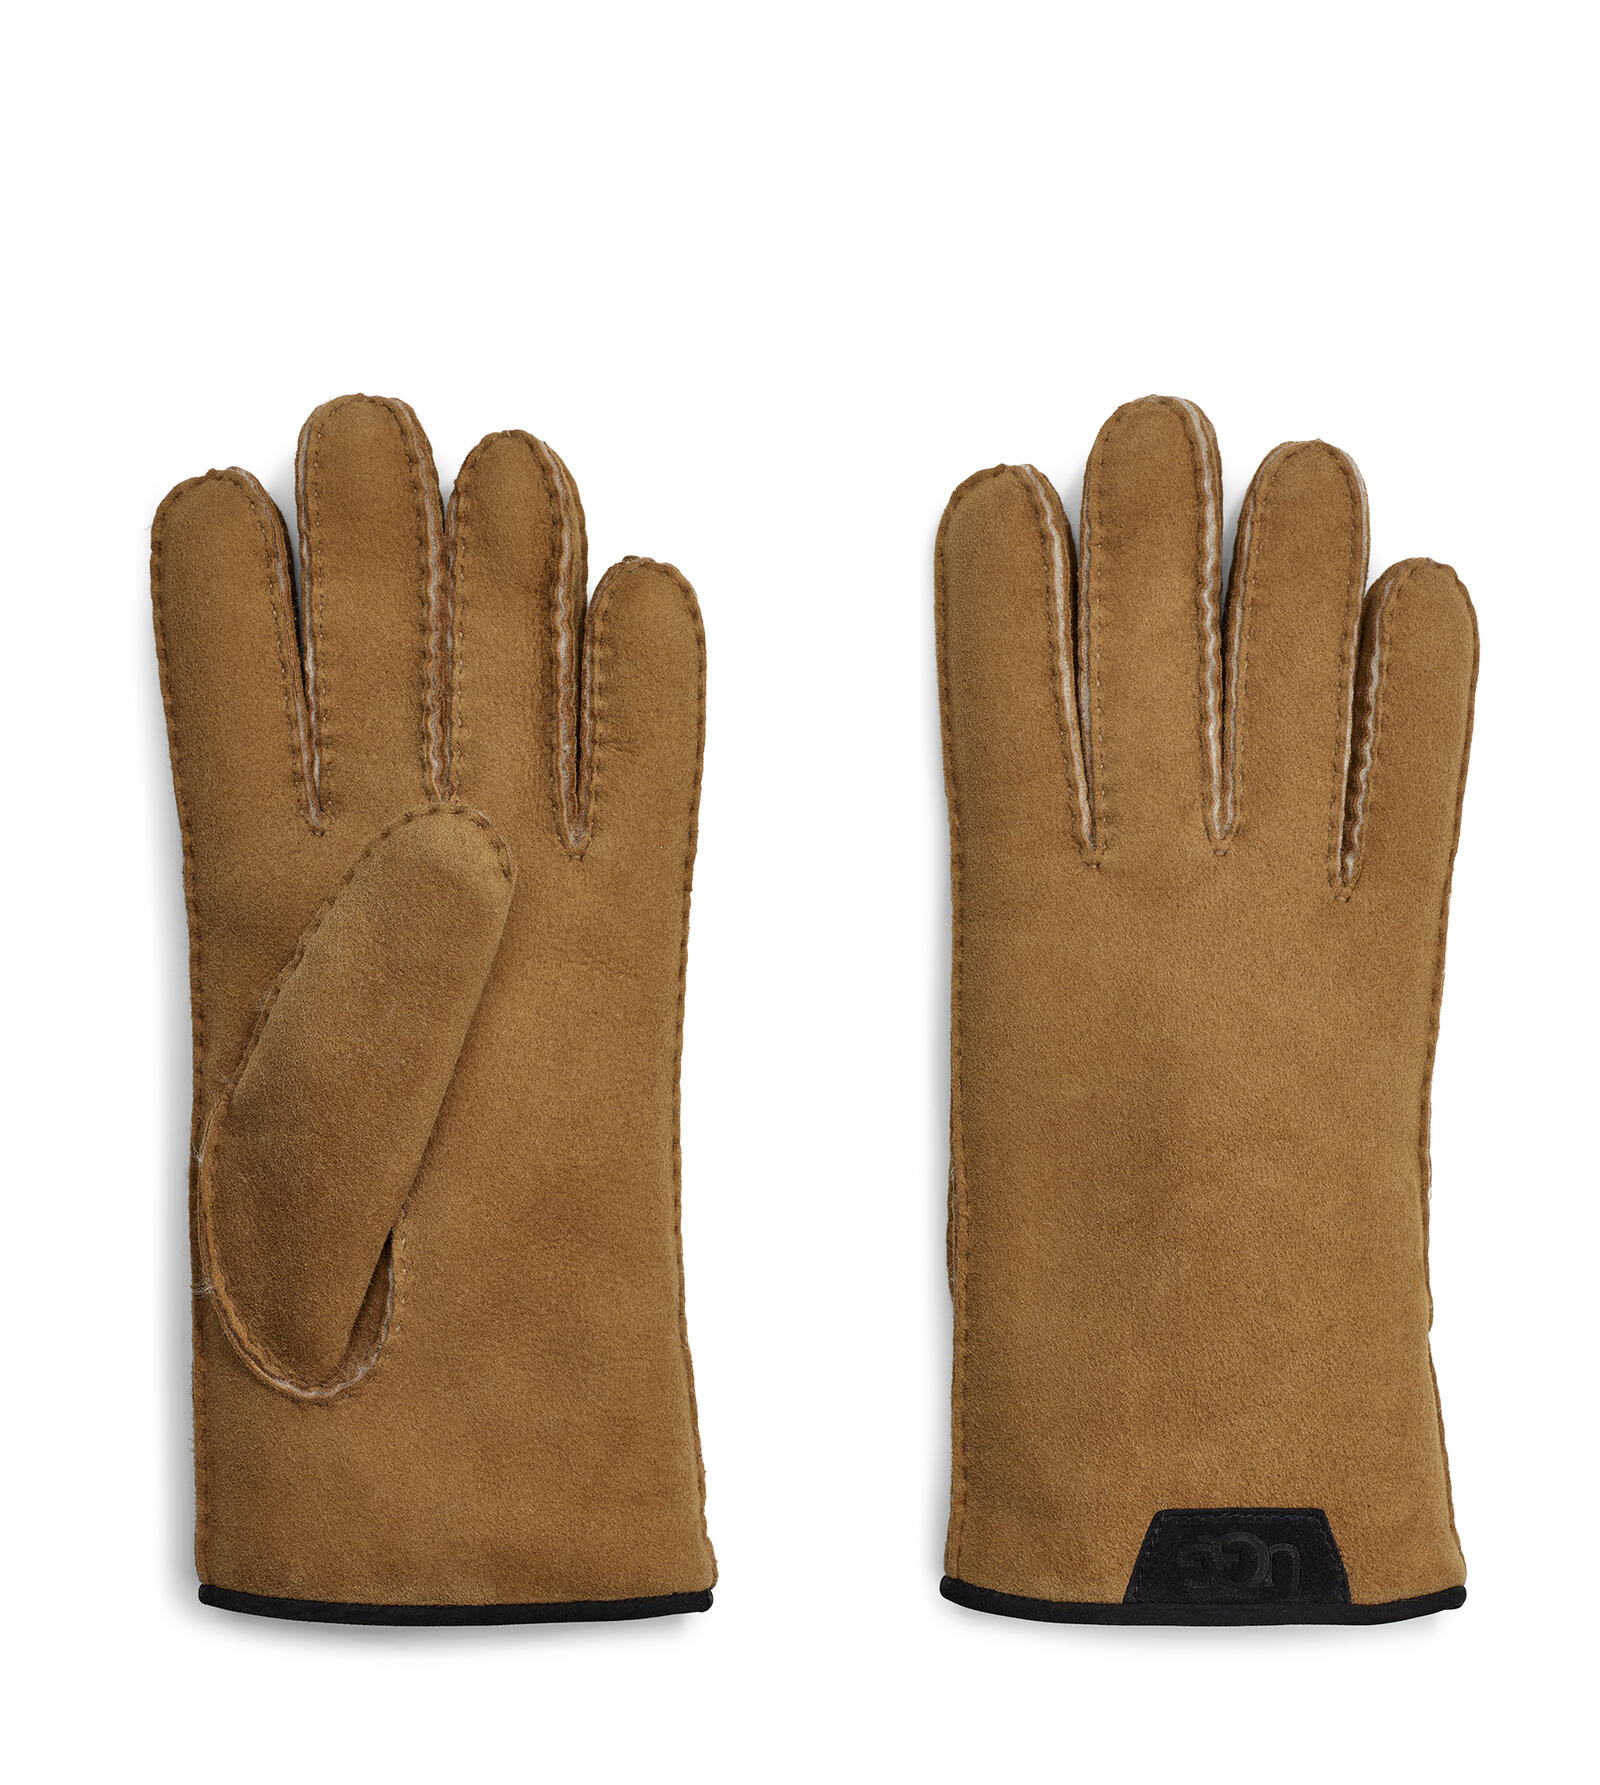 Shearling Glove With Leather Trim